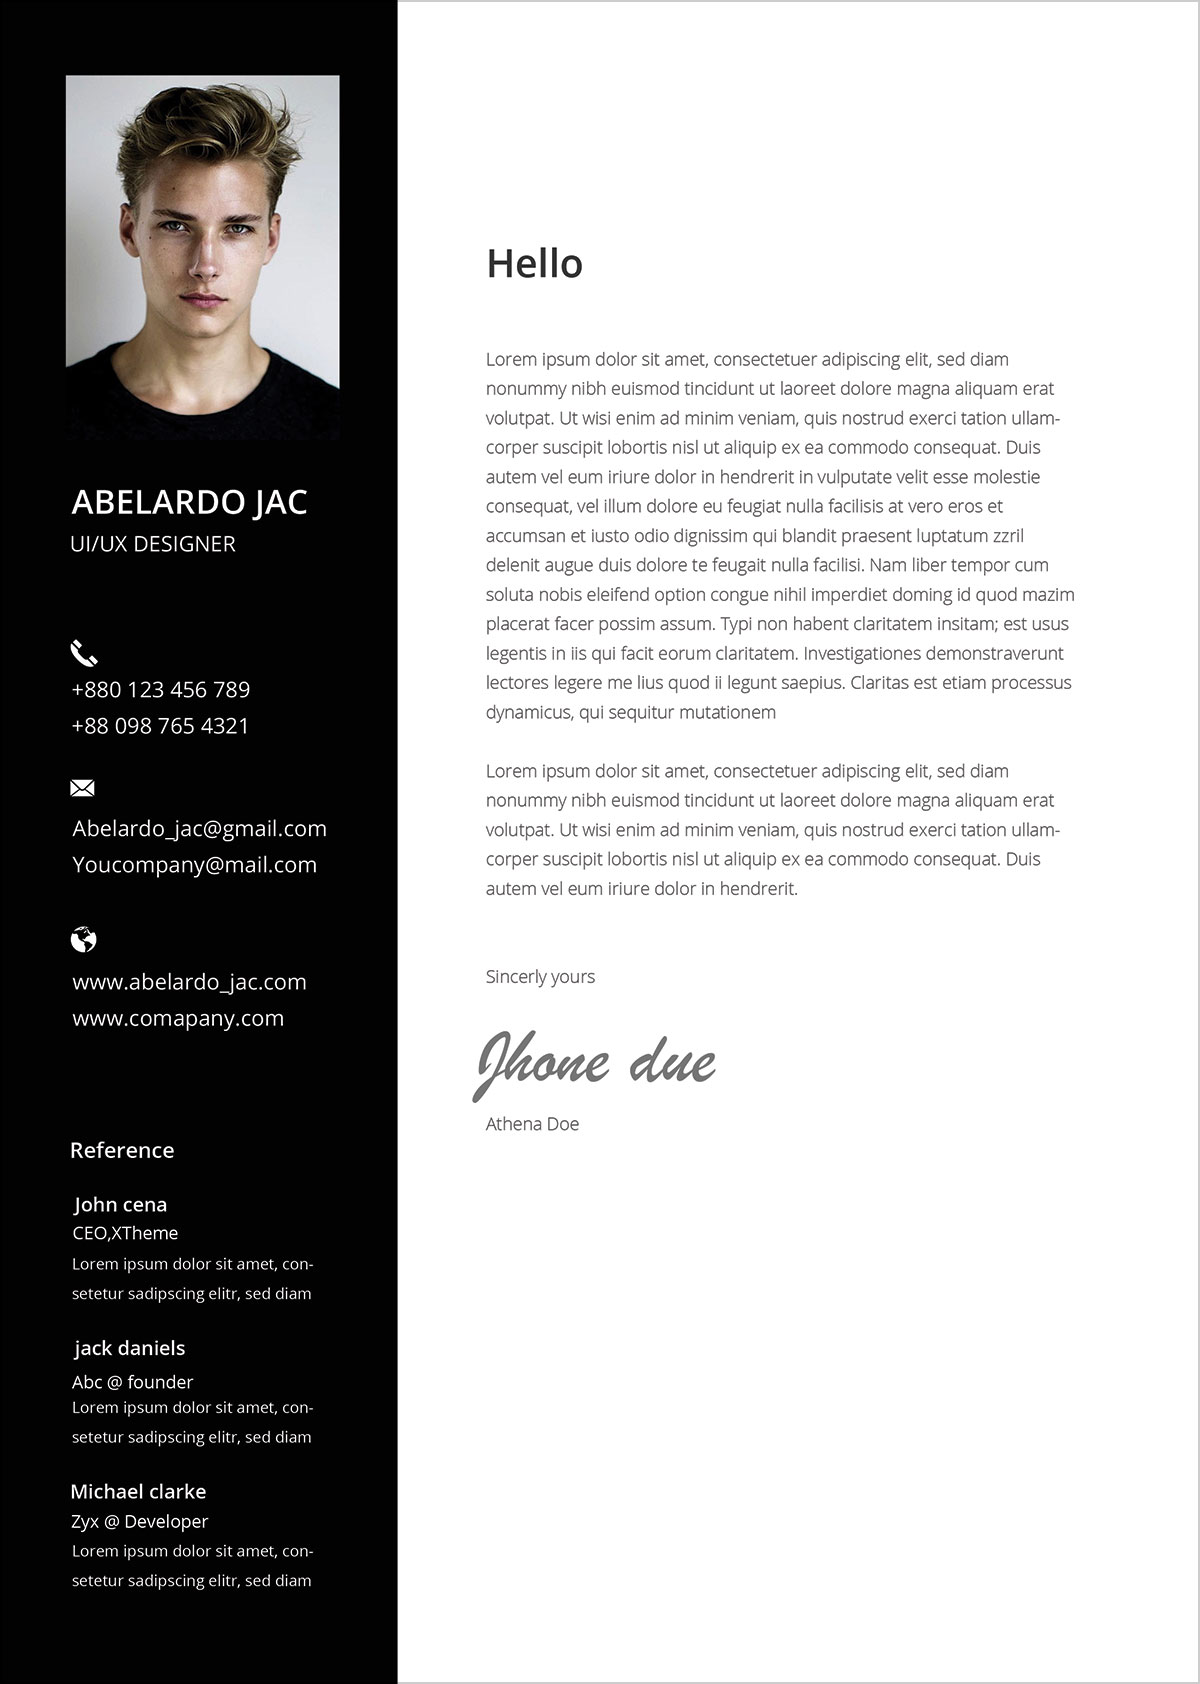 Free-PSD-Cover-Letter-Template-Design-for-Web-Designers